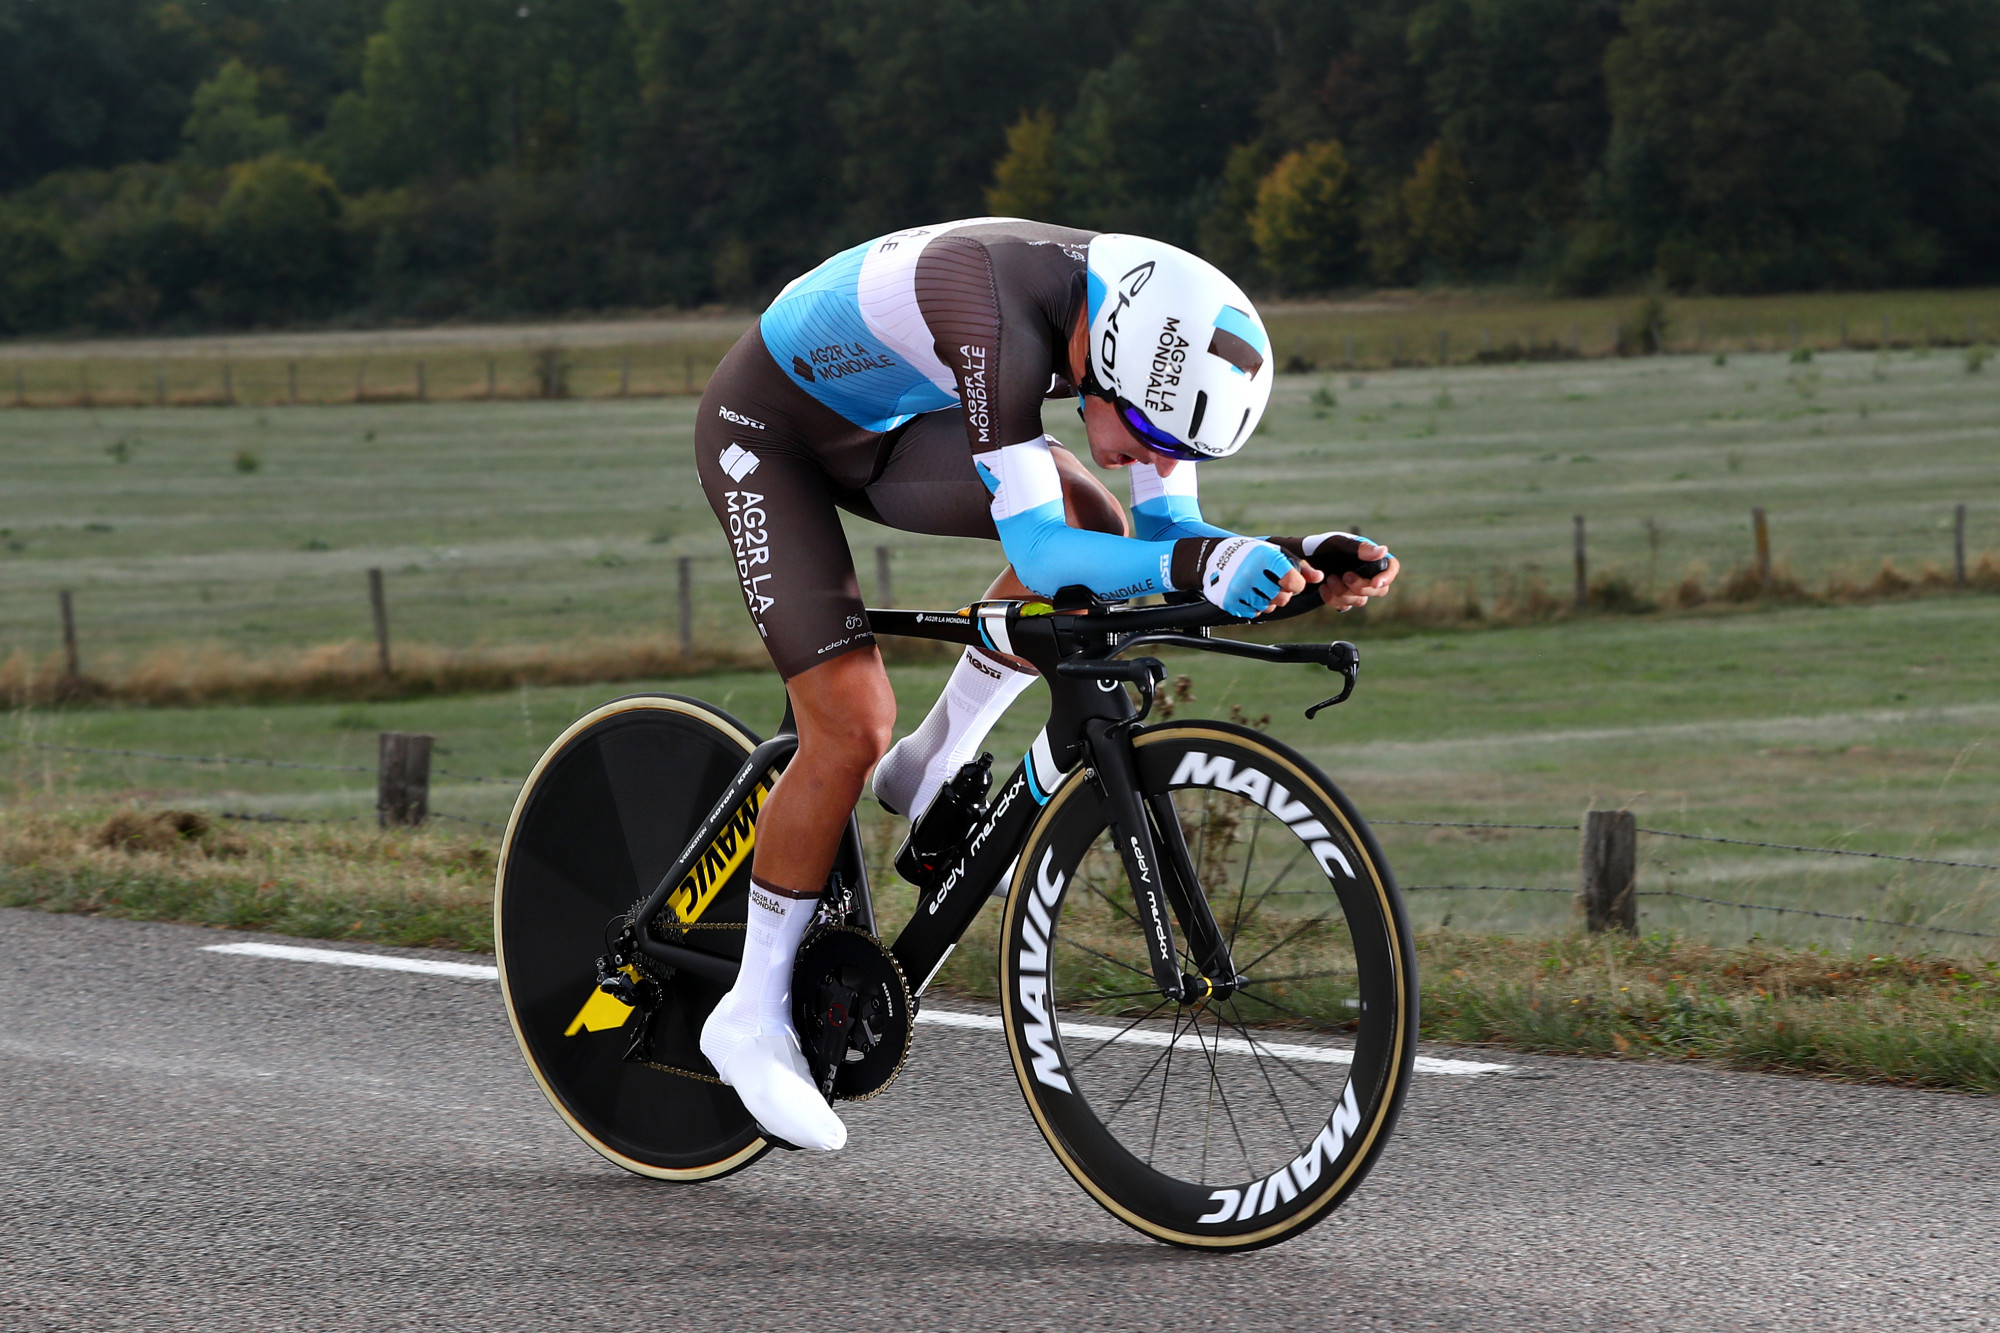 Nans Peters | Tour de France - Stage 20 (ITT)